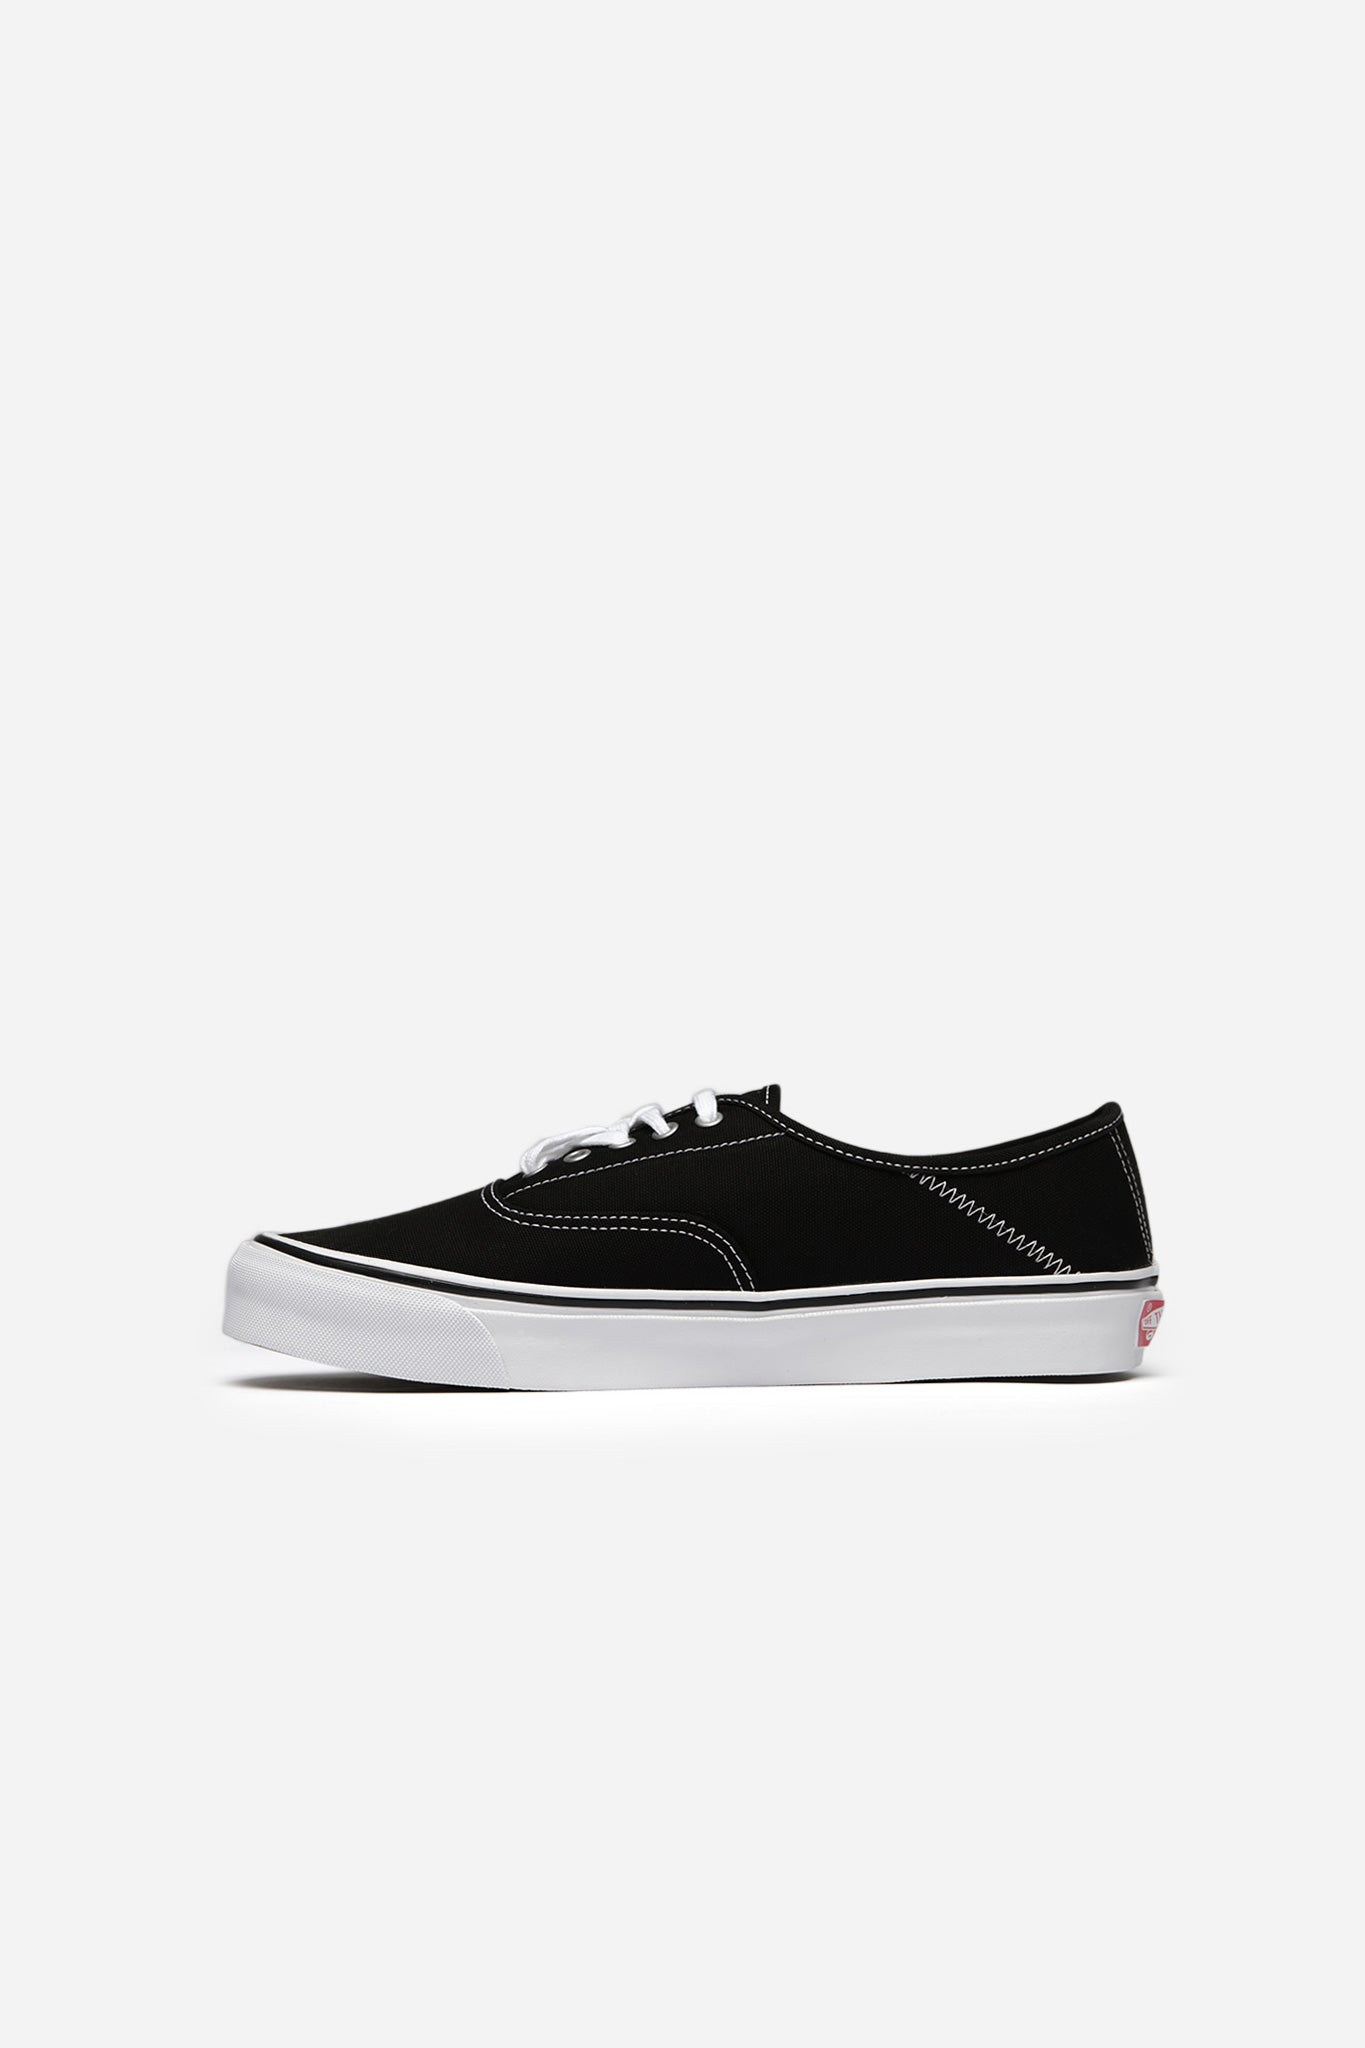 Vans Alyx OG Style 43 Authentic Fold Down Black